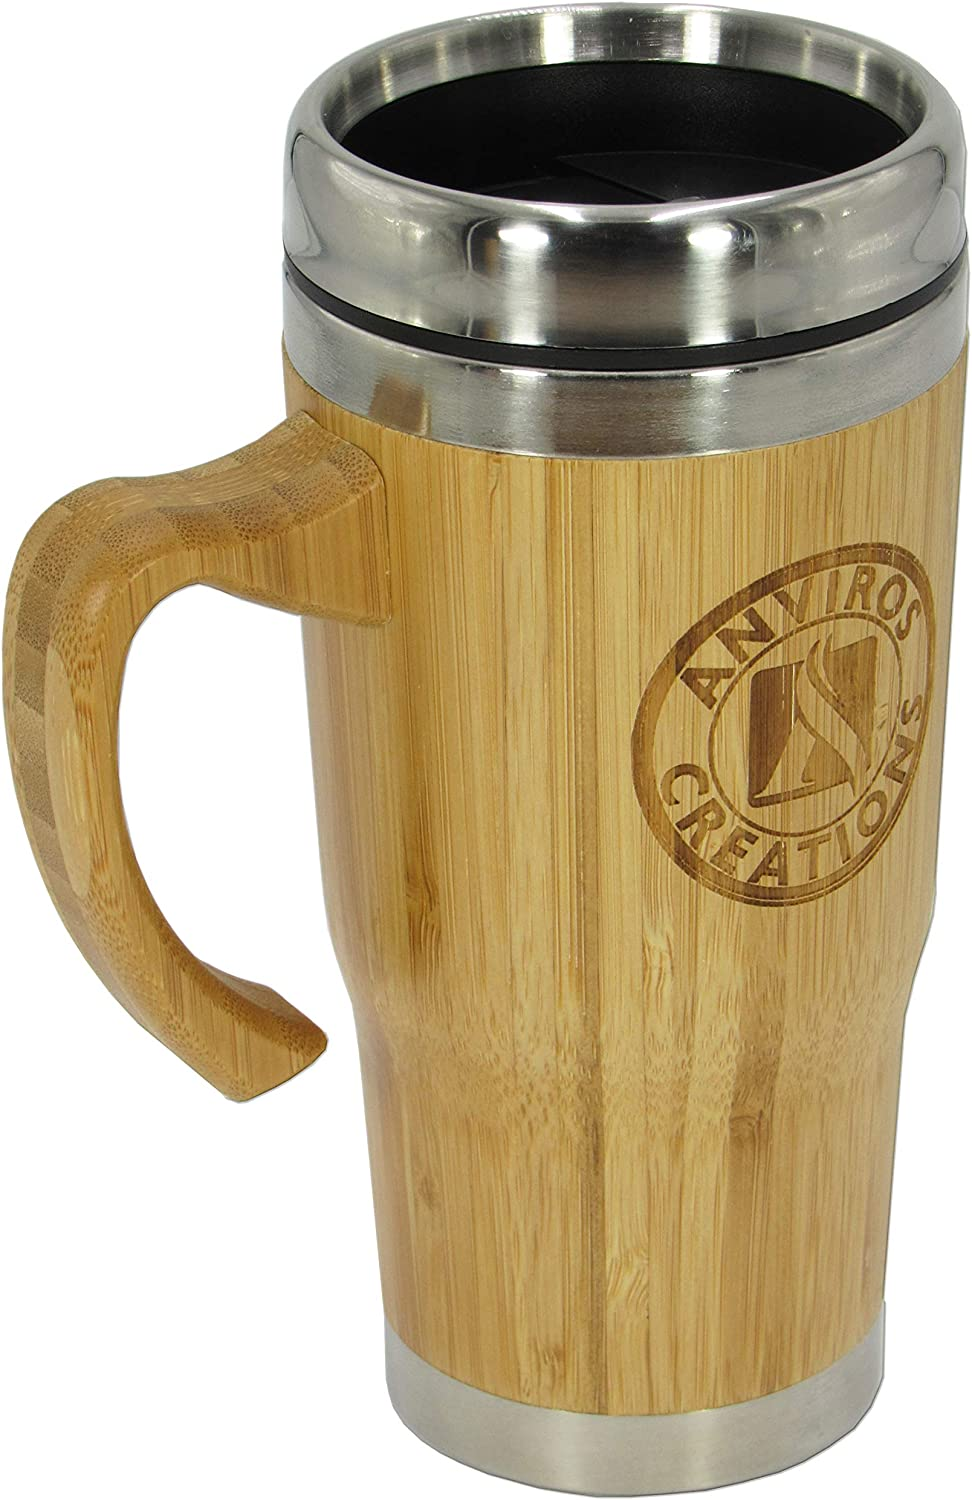 ANVIROS Bamboo Travel Mug Tumbler Thermos with Handle for Coffee, Tea, Brew Hot Cold Beverage  Splash- Proof  Natural Eco-Friendly Easy Clean Beautiful Gift Ready  Stainless-Steel Leak-Proof 16 oz